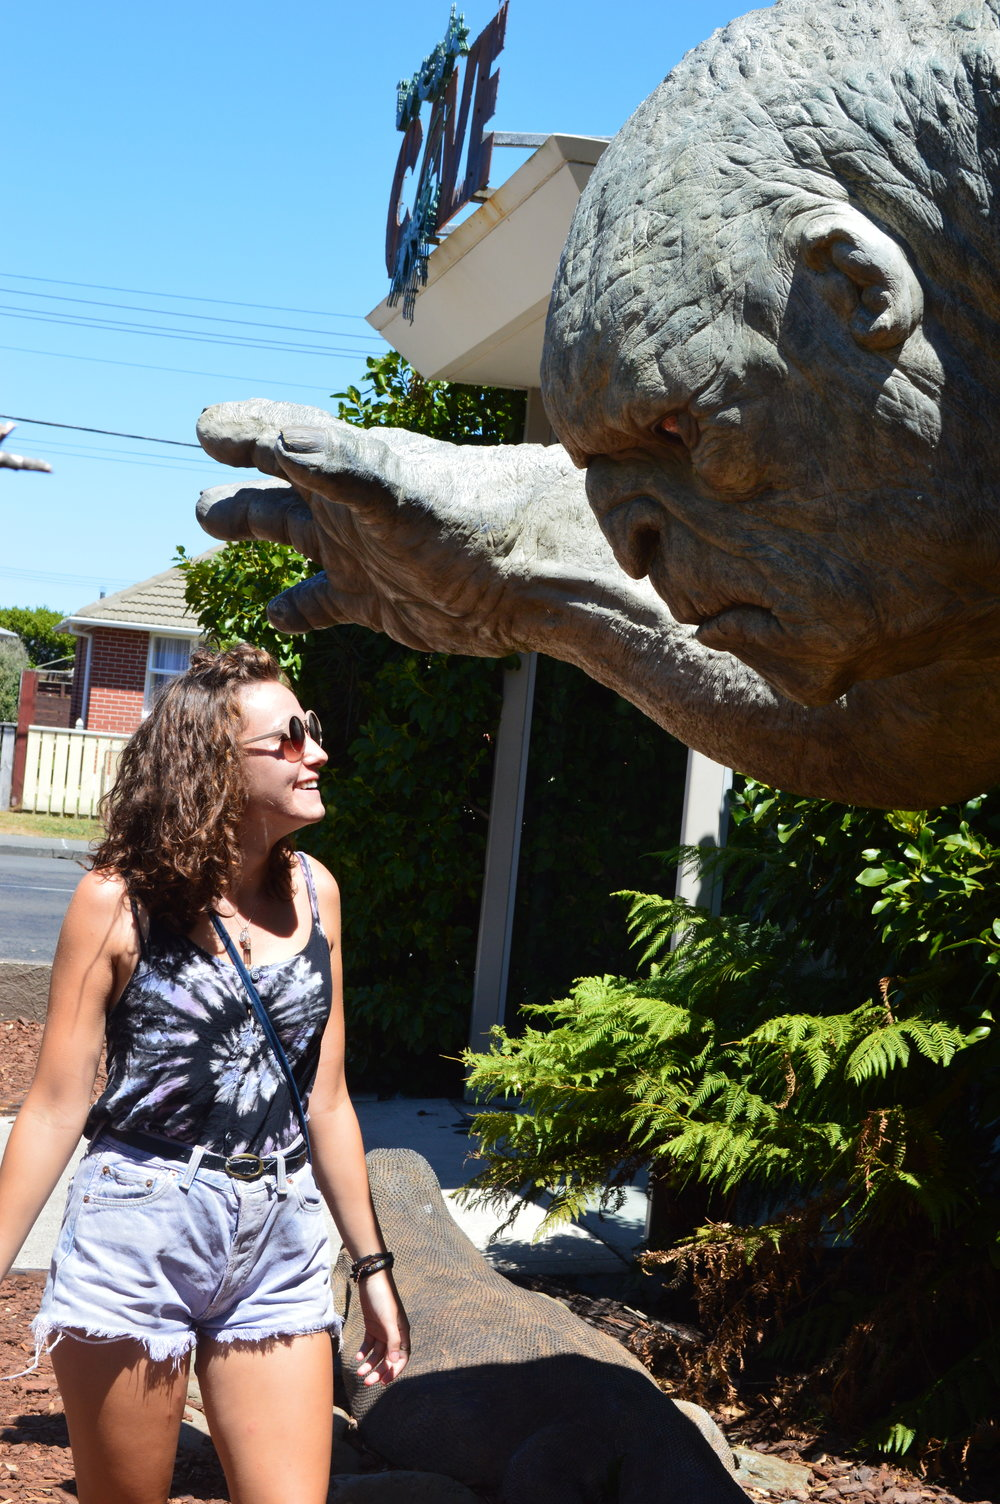 Outside the WETA Cave